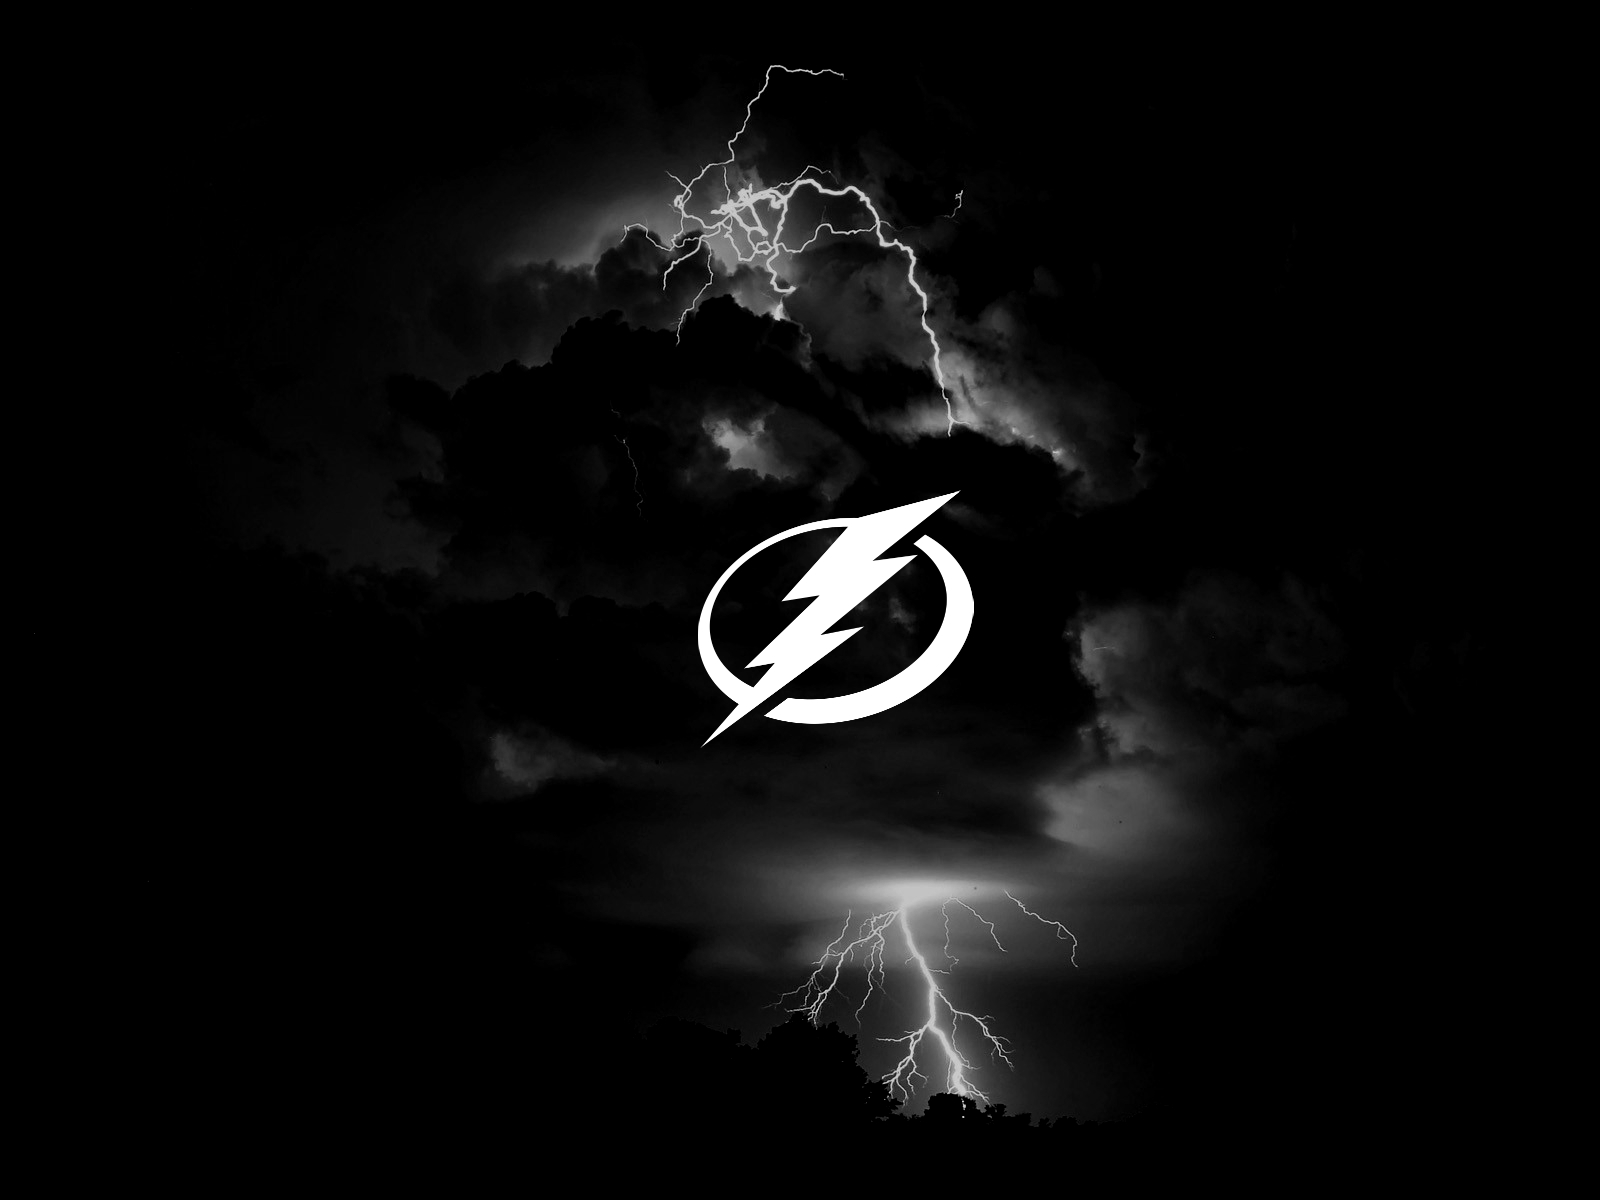 Tampa Bay Lightning Wallpaper 2015 Collection of Tampa 1600x1200